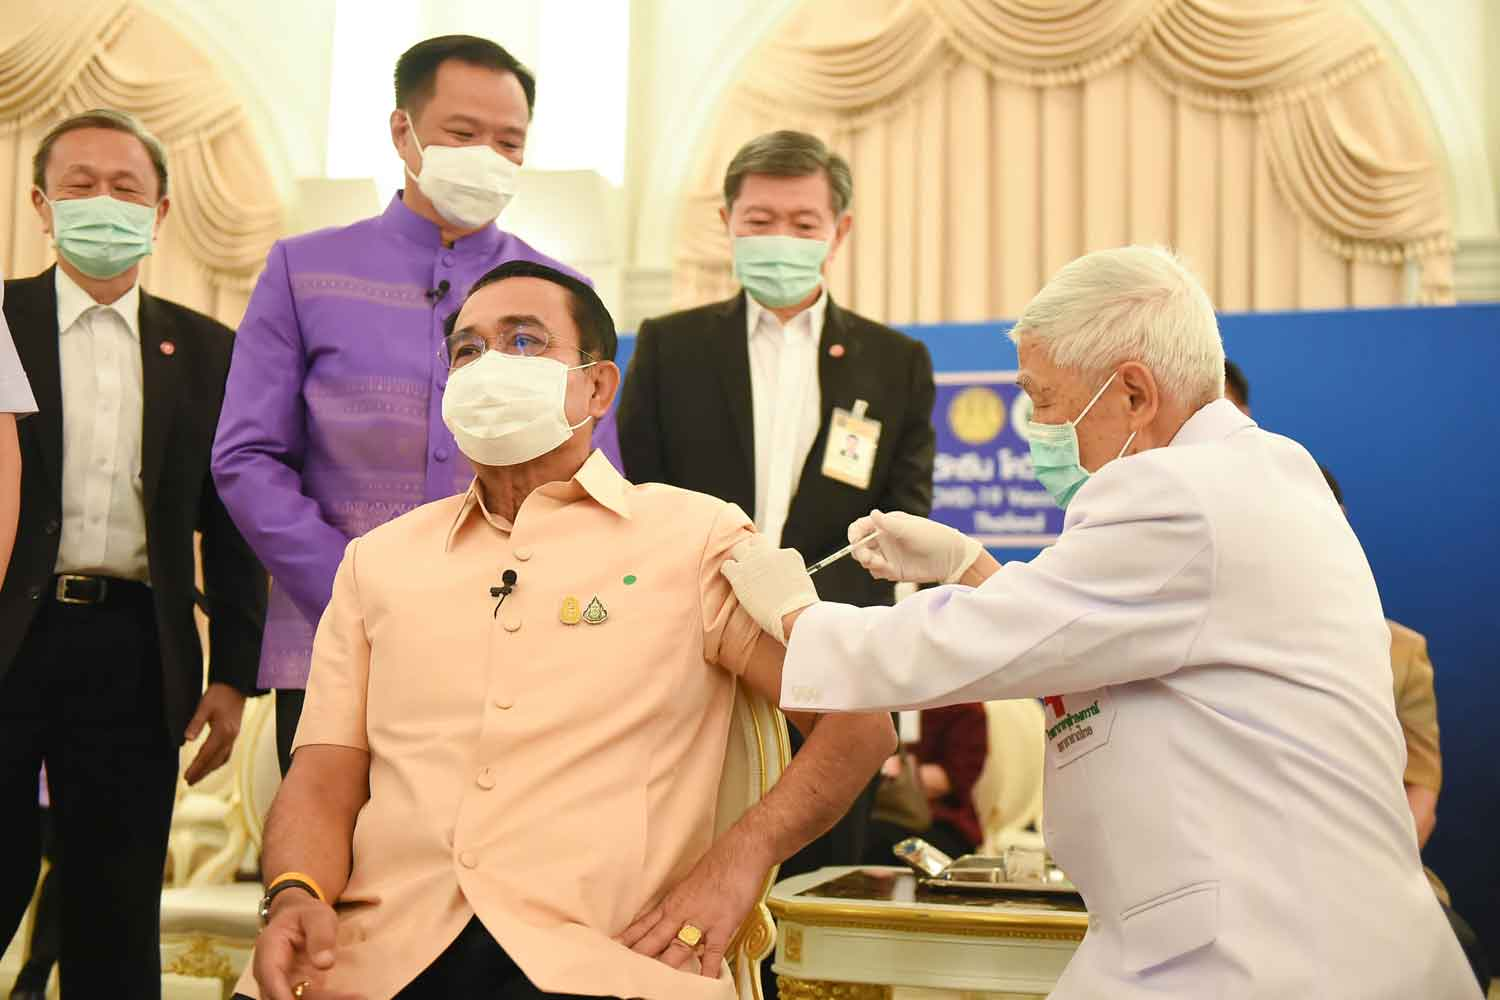 Prime Minister Prayut Chan-o-cha, left, is given the AstraZeneca Covid-19 vaccine by Prof Dr Yong Poovorawan, head of the Centre of Excellence in Clinical Virology, at Government House in Bangkok on Tuesday morning. (Photo from the Covid-19 Information Centre)